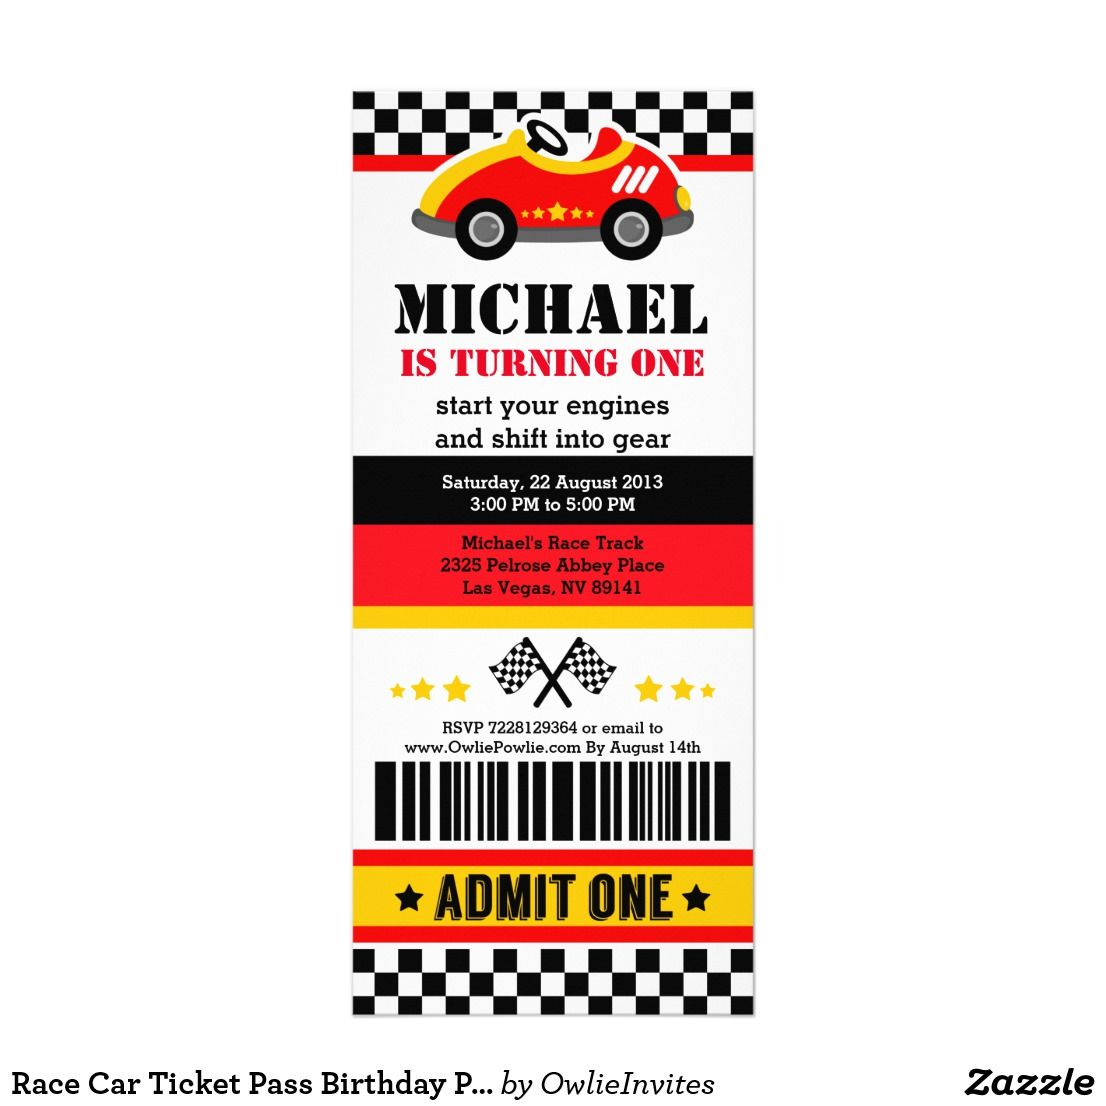 Race Car Ticket Pass Birthday Party Invitation | { Happy Birthday ...